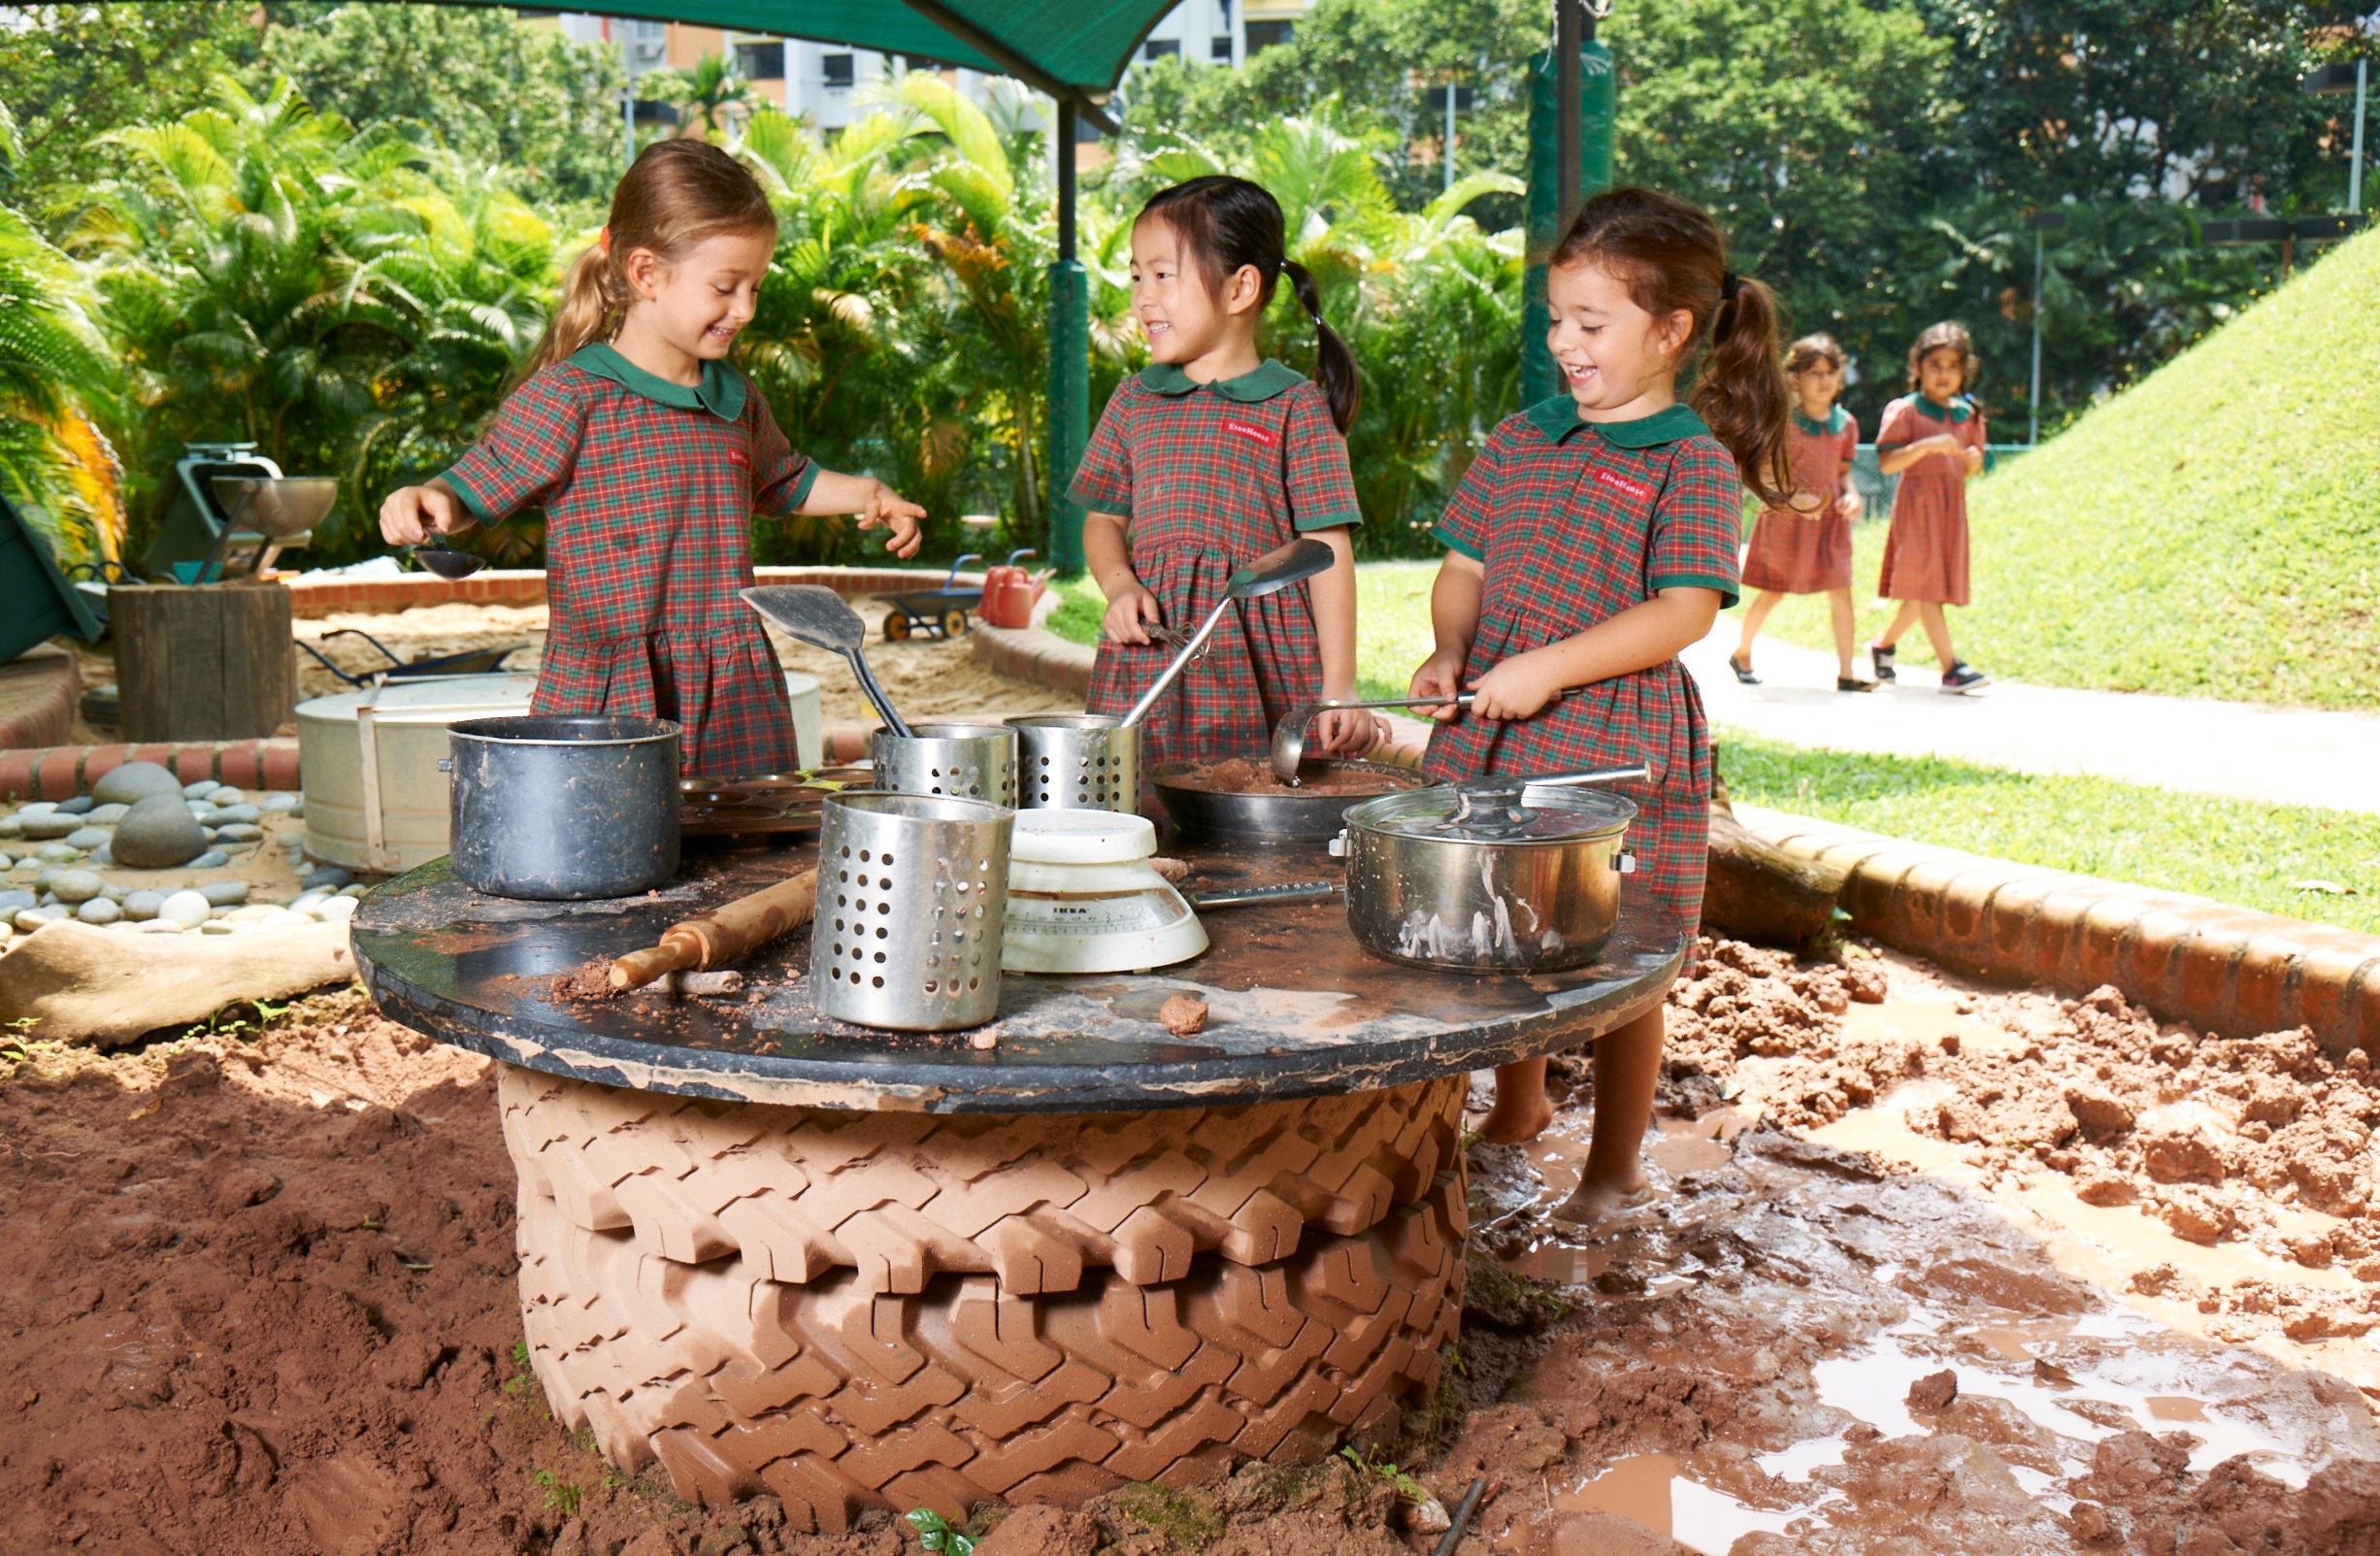 Why Is Outdoor Learning Important For Children?